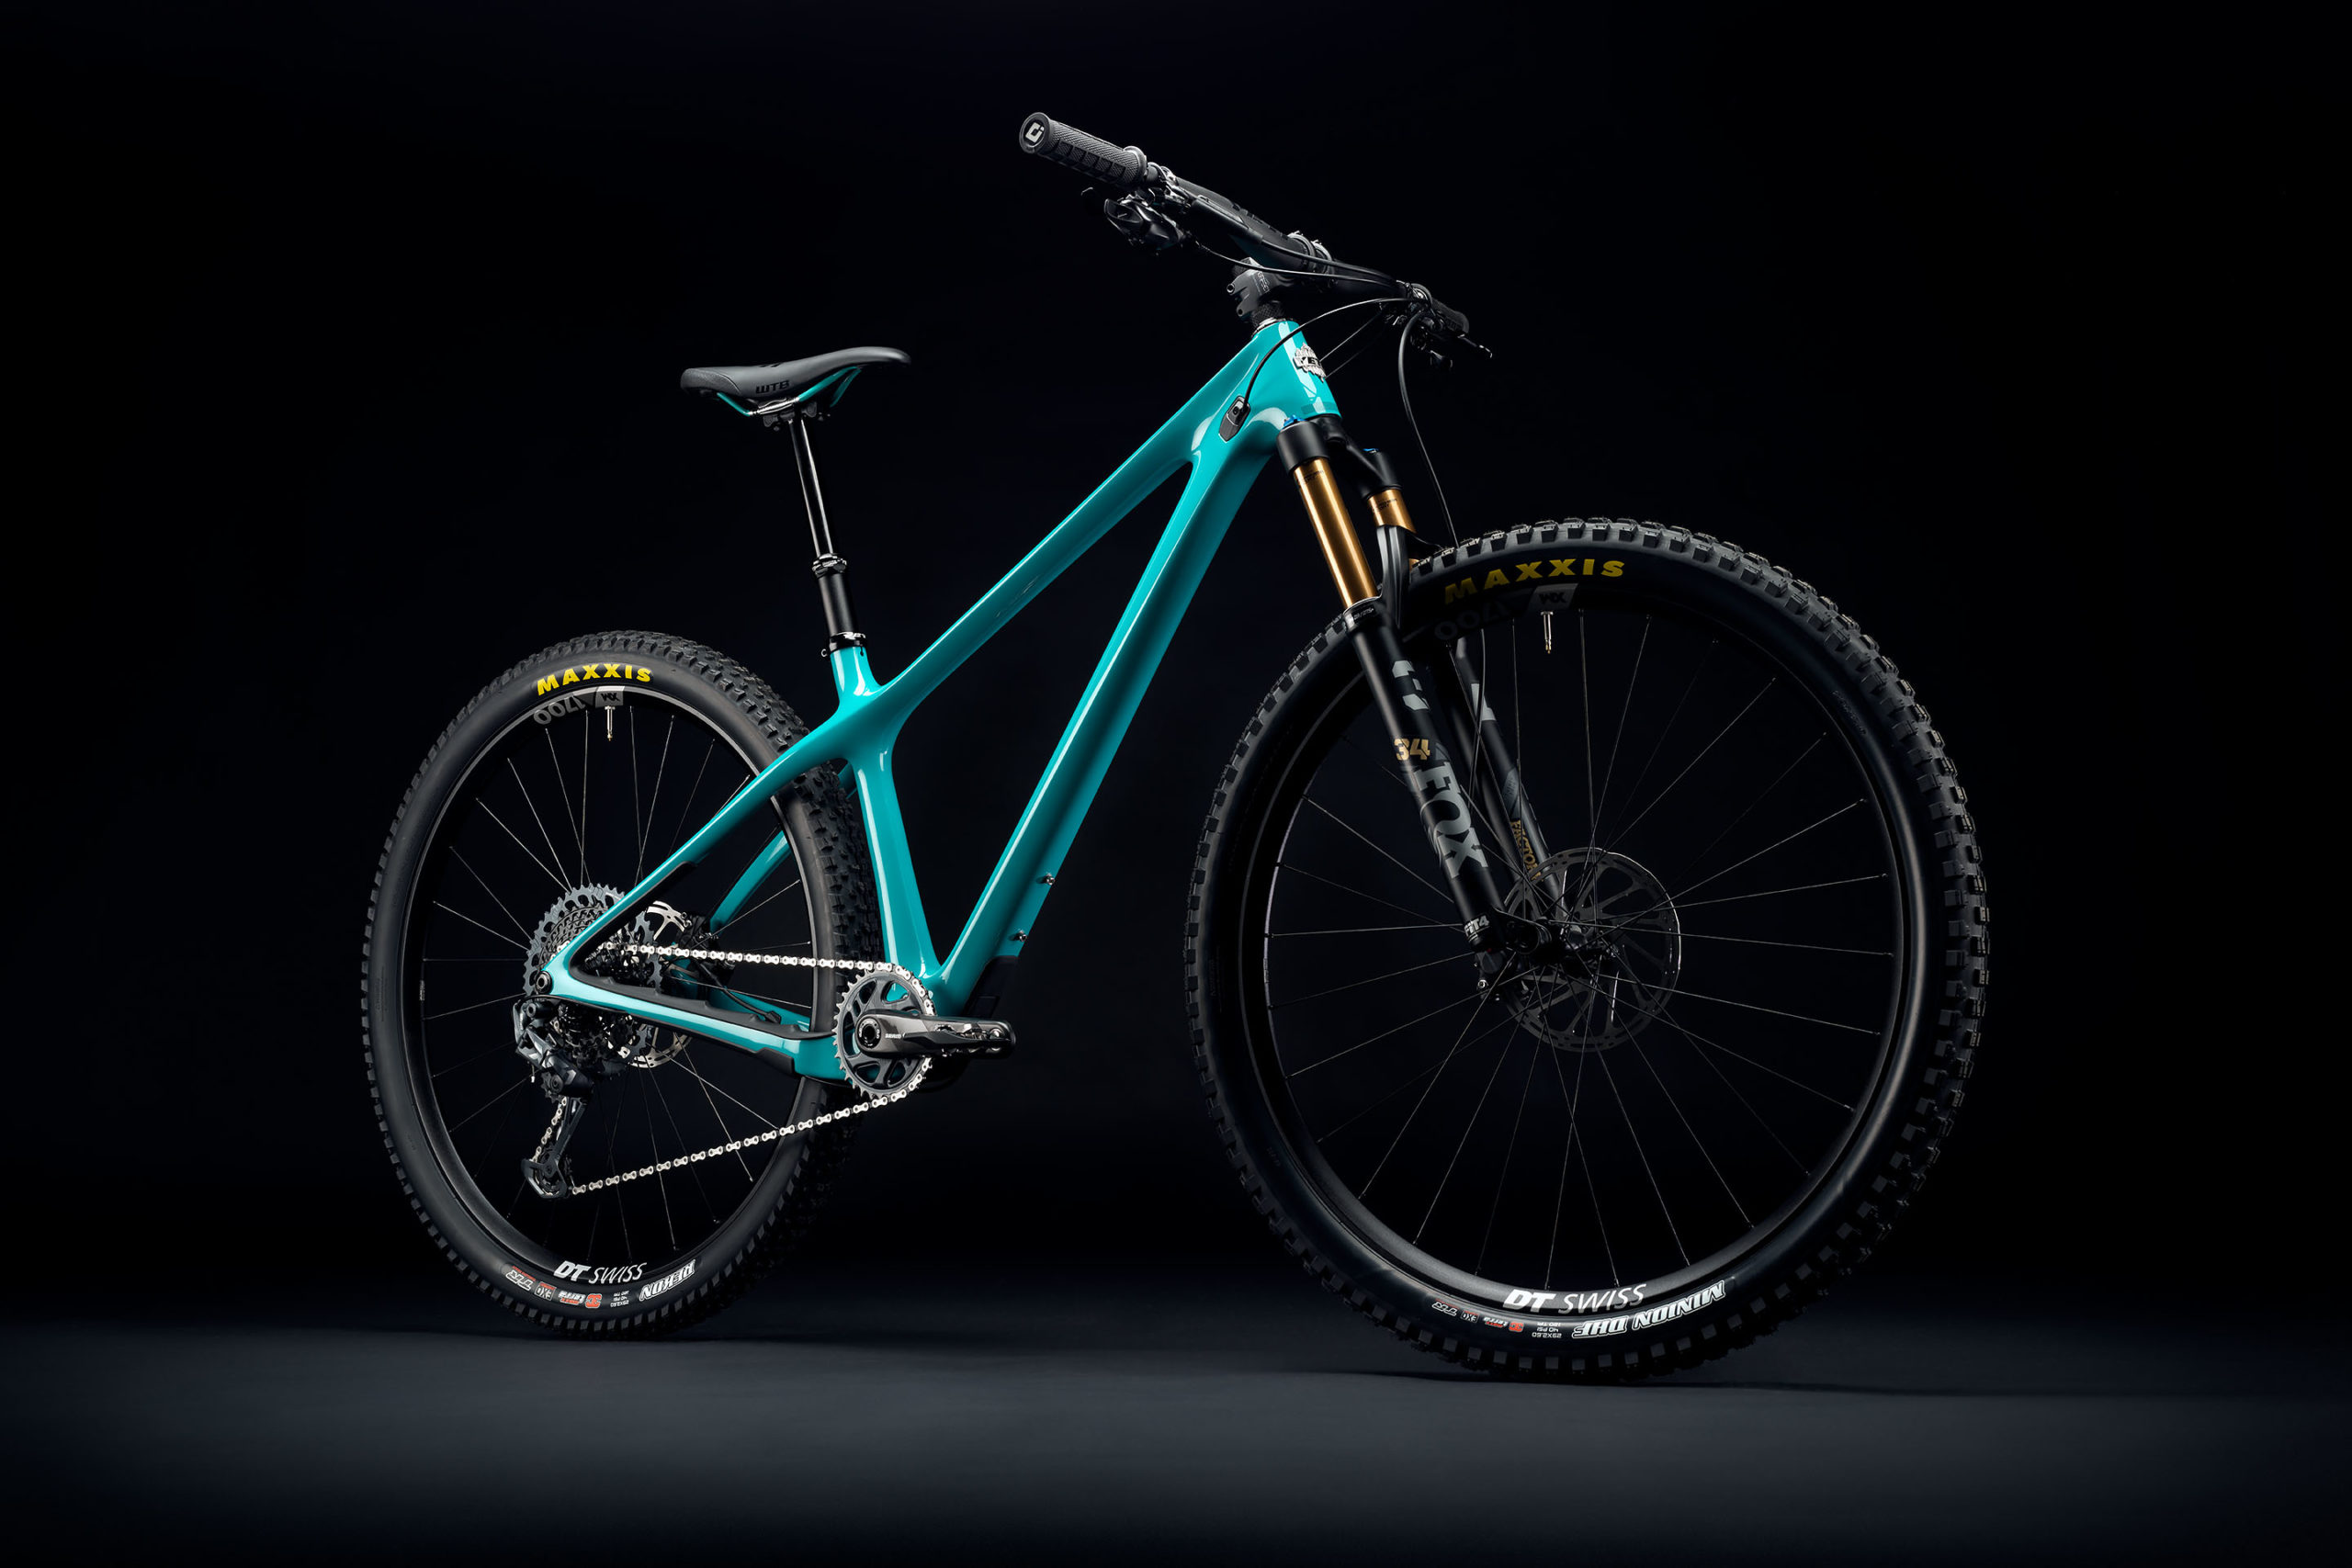 Yeti ARC Hardtail Gets More Models & Wide Release | BIKE Magazine